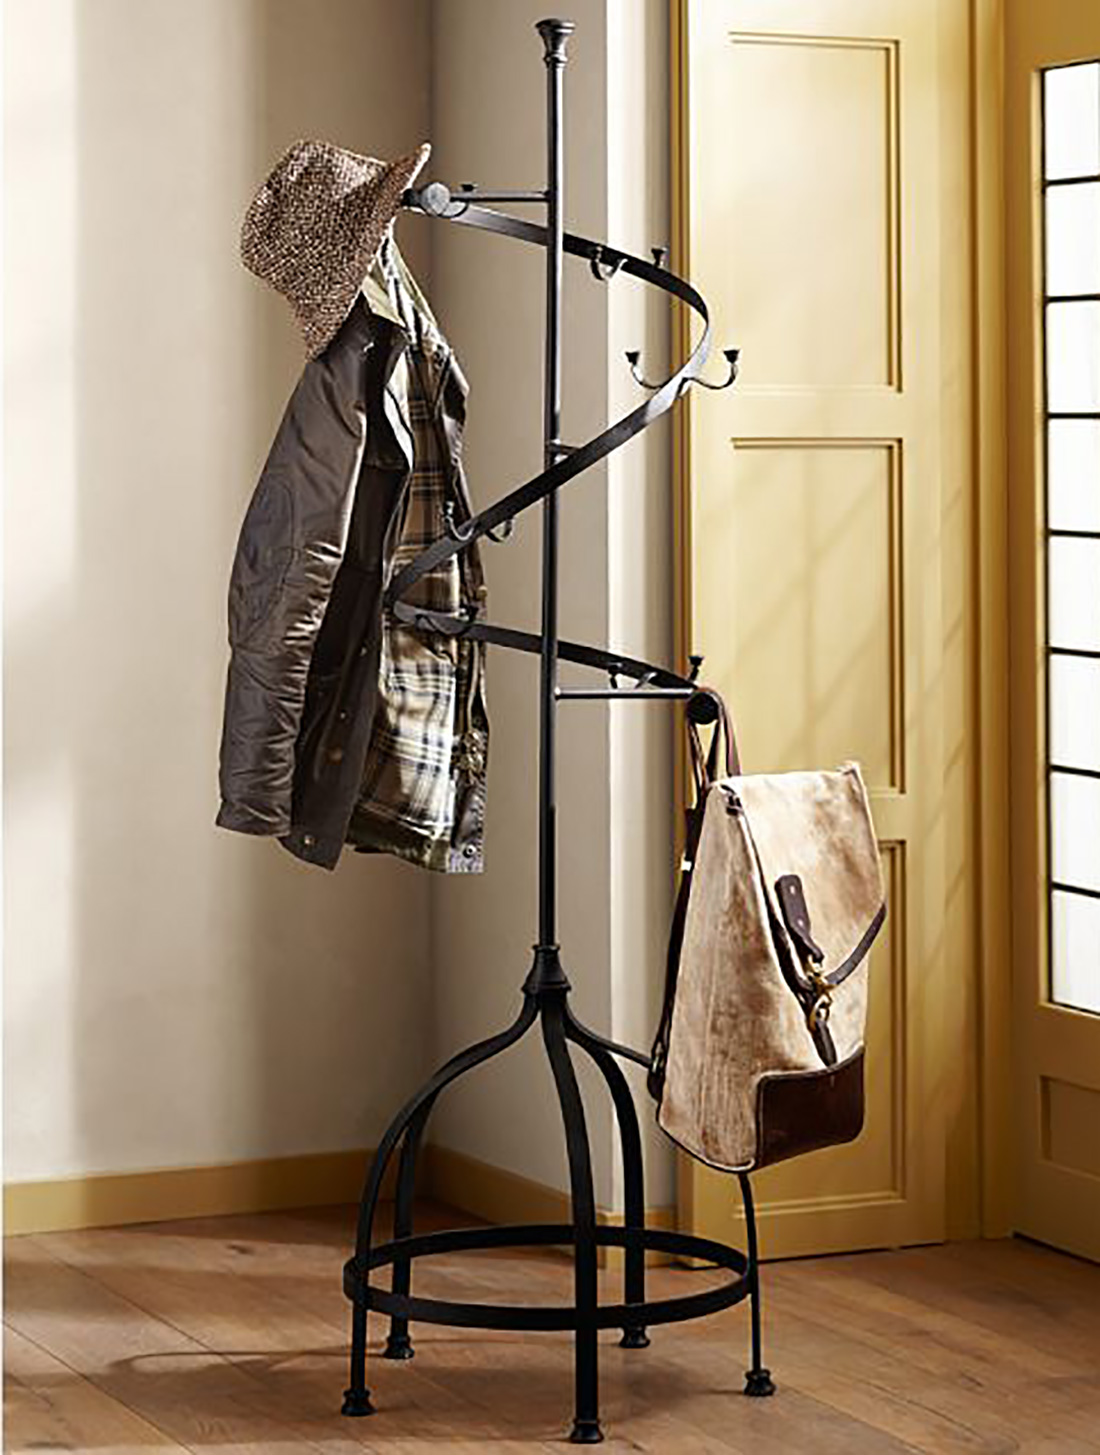 Standing Coat Rack \u2013 Stylish Storage for Your Wardrobe | HomesFeed